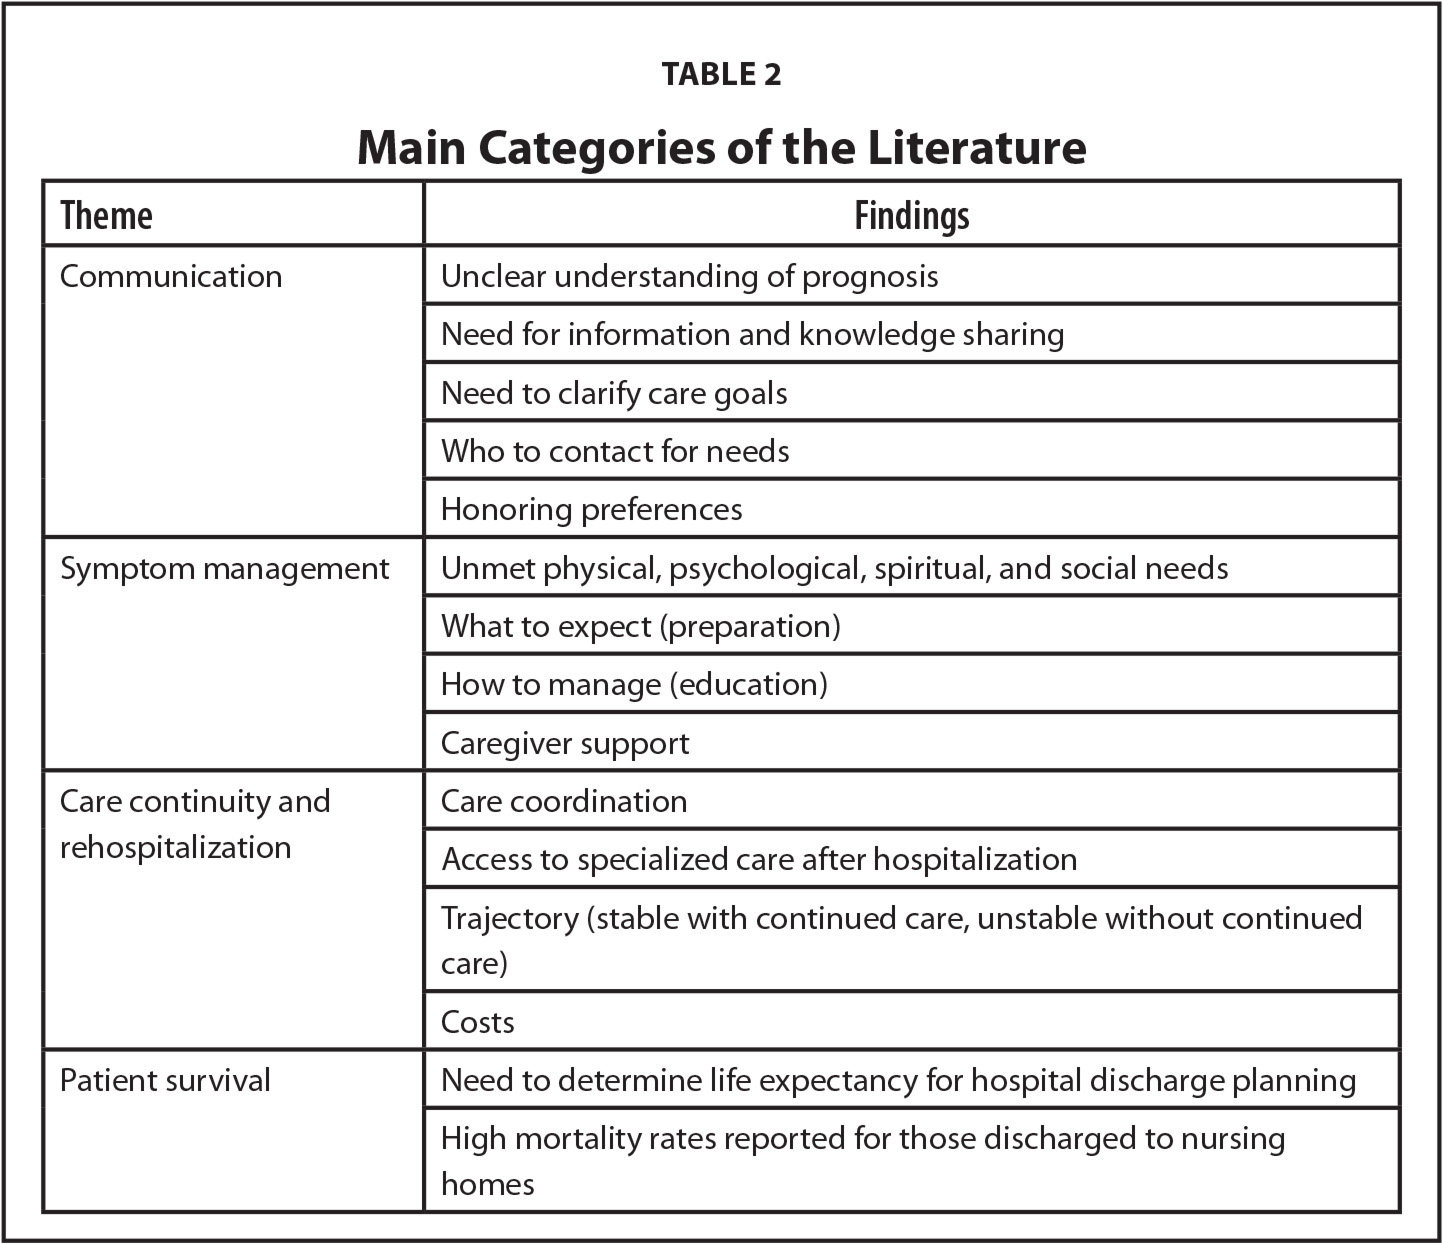 Main Categories of the Literature